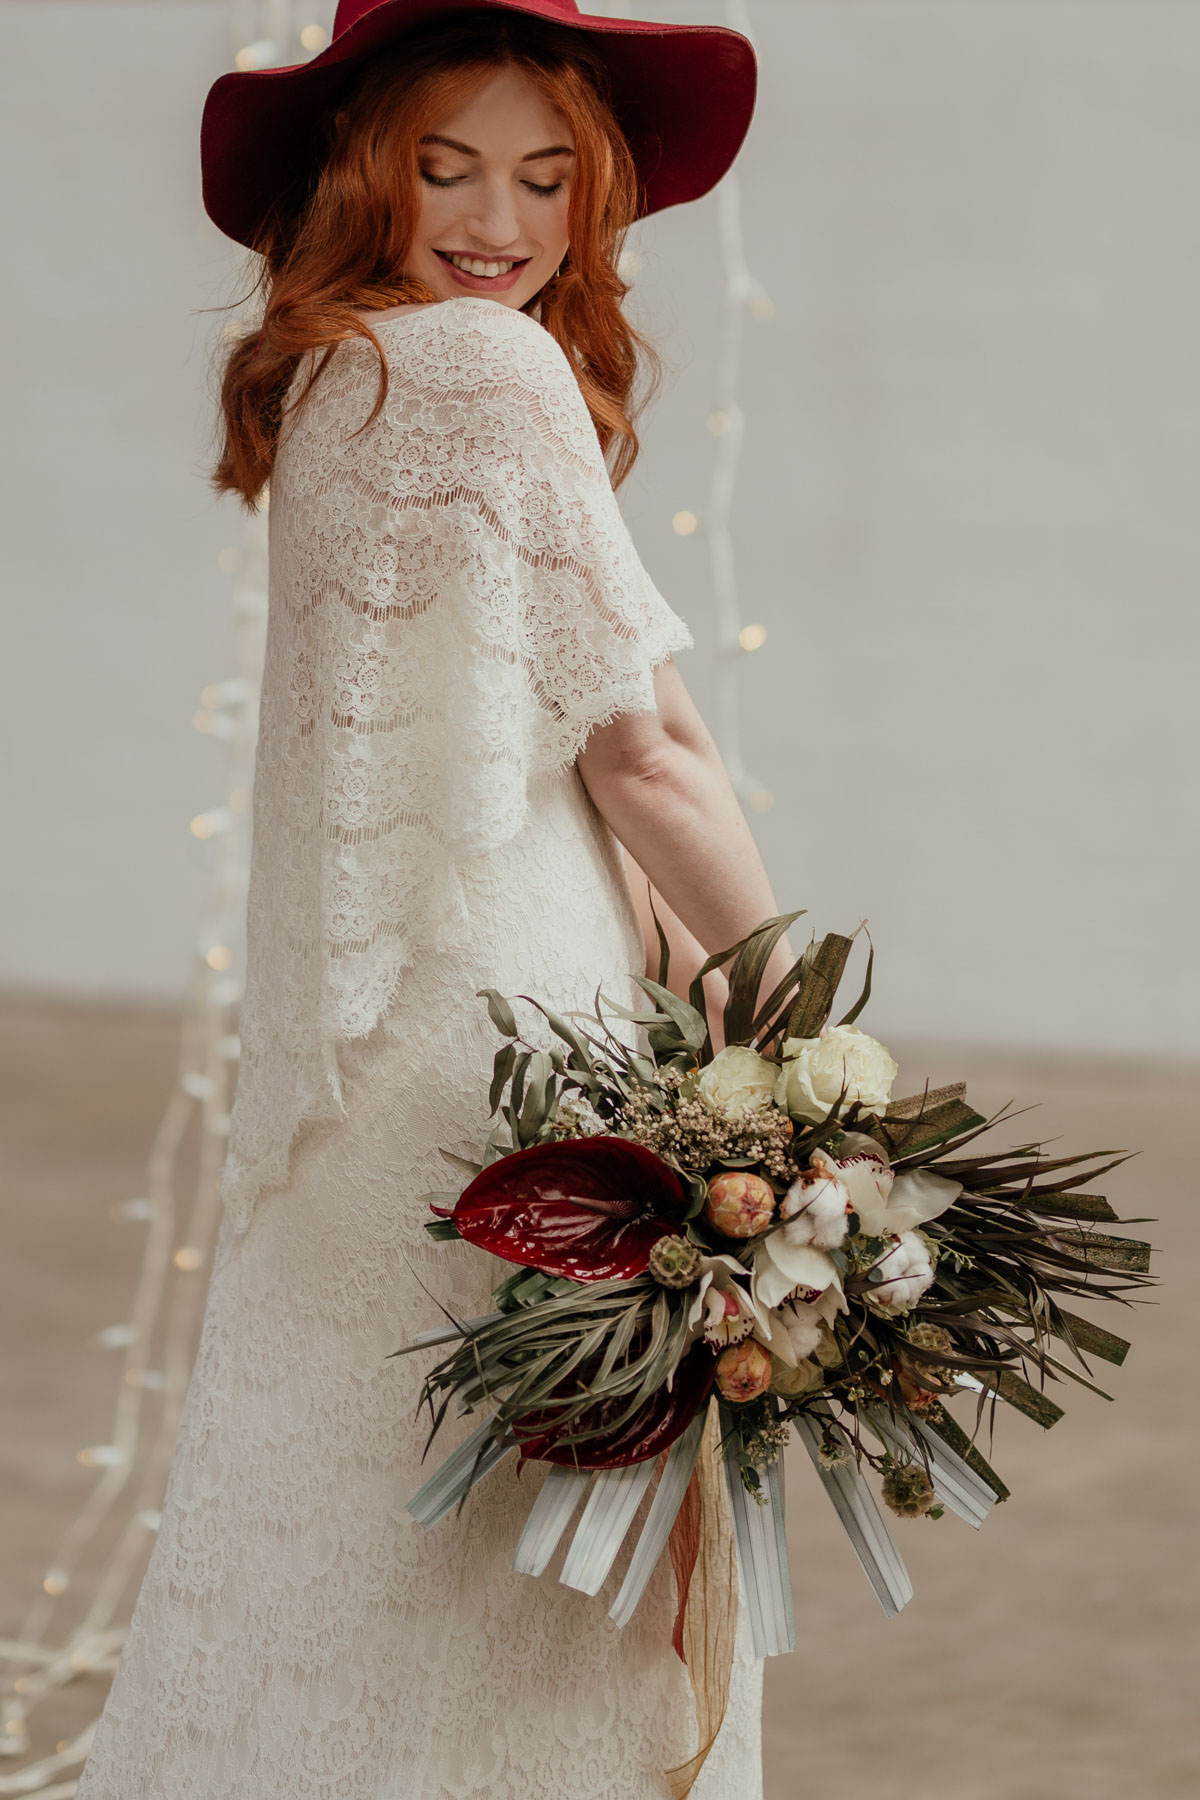 Industrial Meets Boho Wedding Inspiration: Wedding bouquet with palms, cotton, dried flowers, Anthuriums